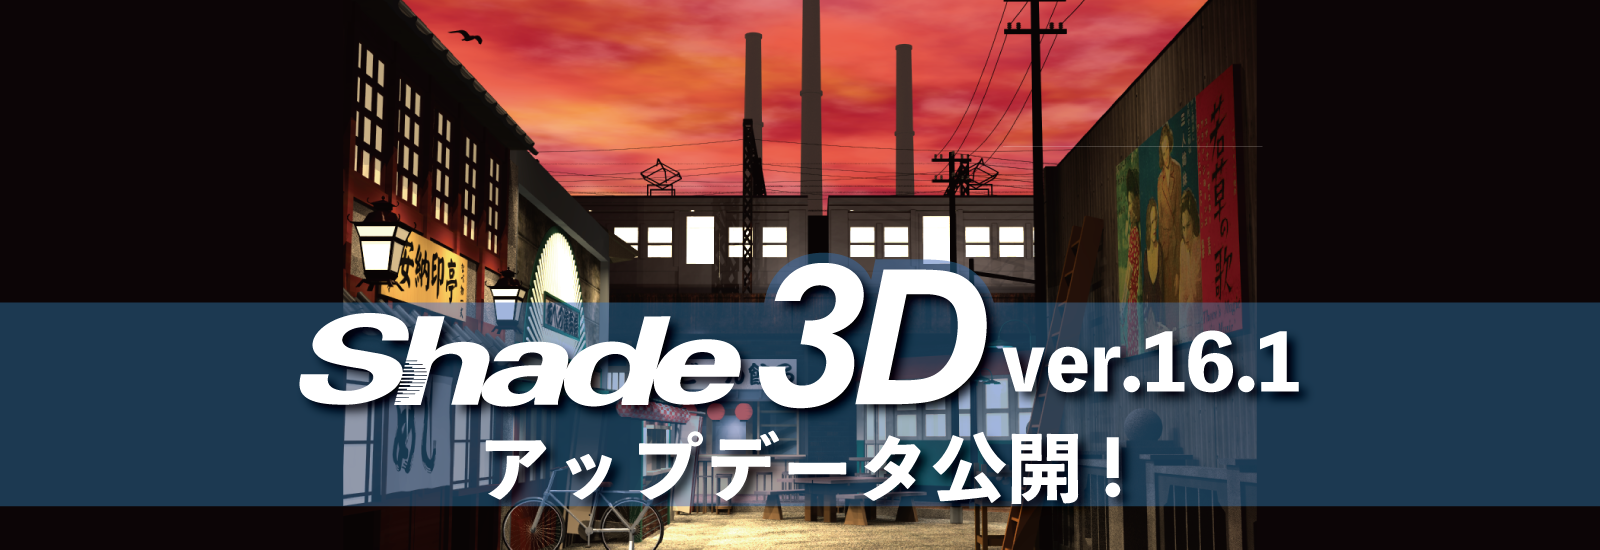 Shade3D ver.16.1 アップデータ TOP